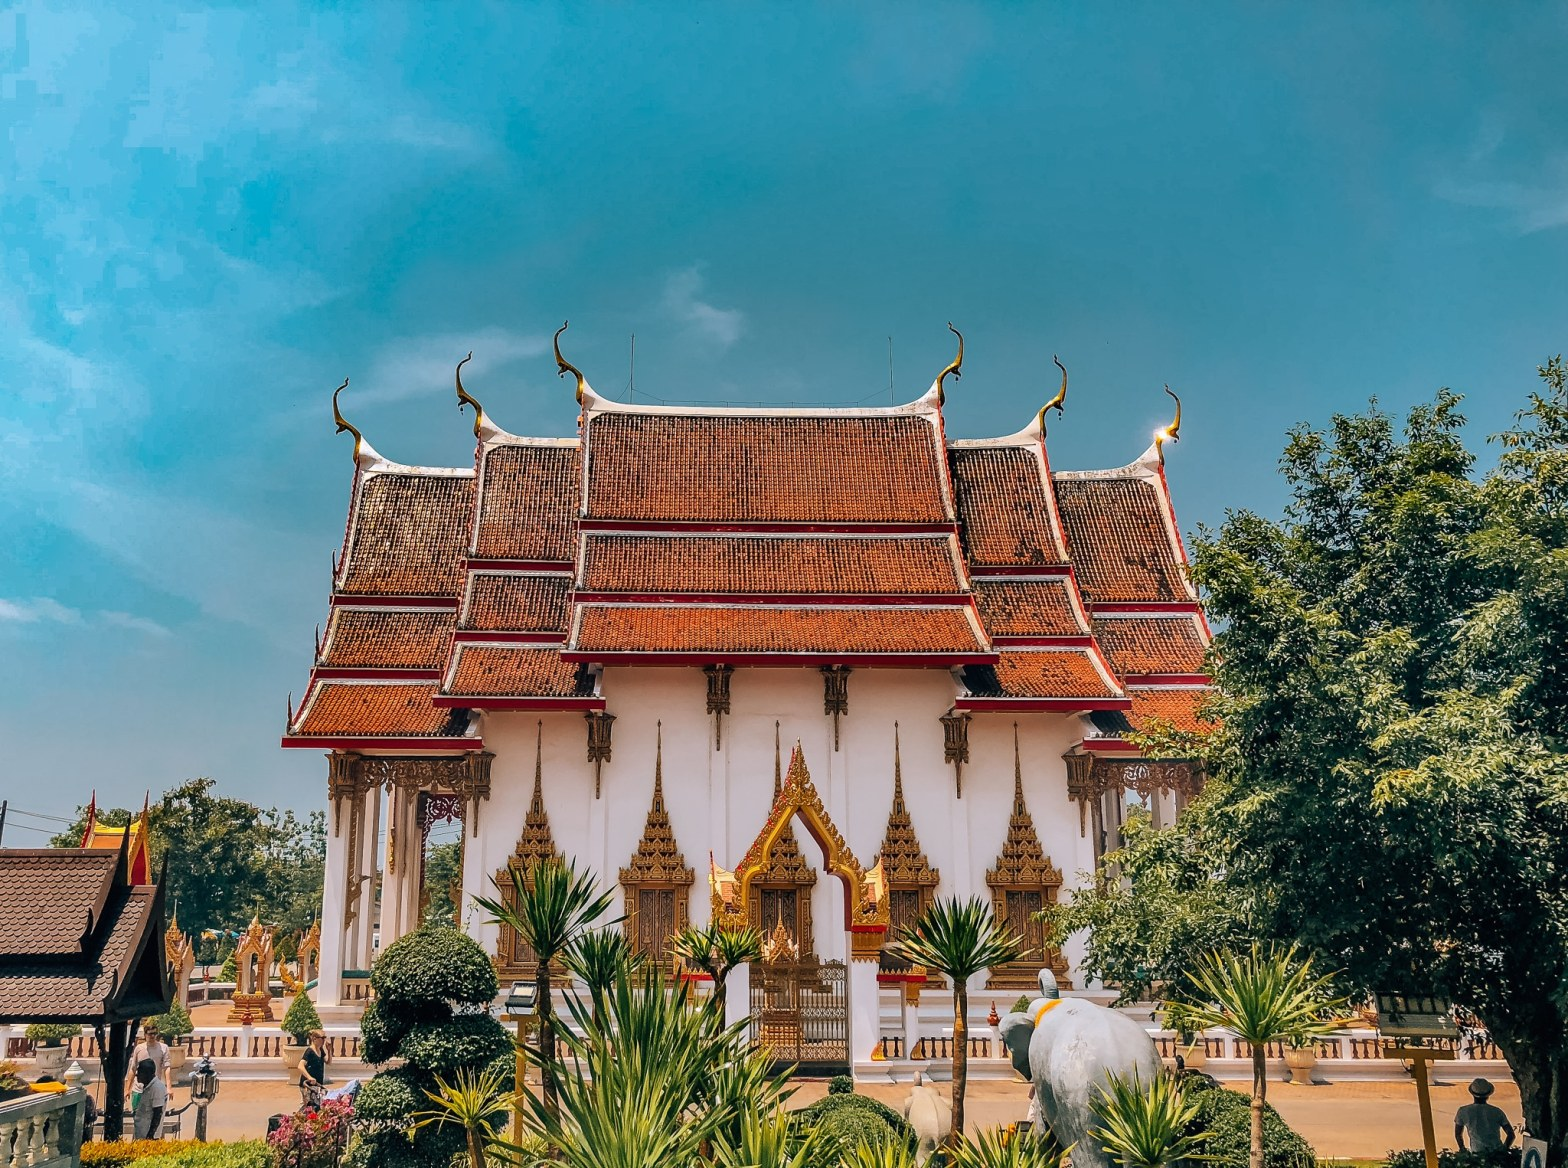 View of Wat Chalong from the side